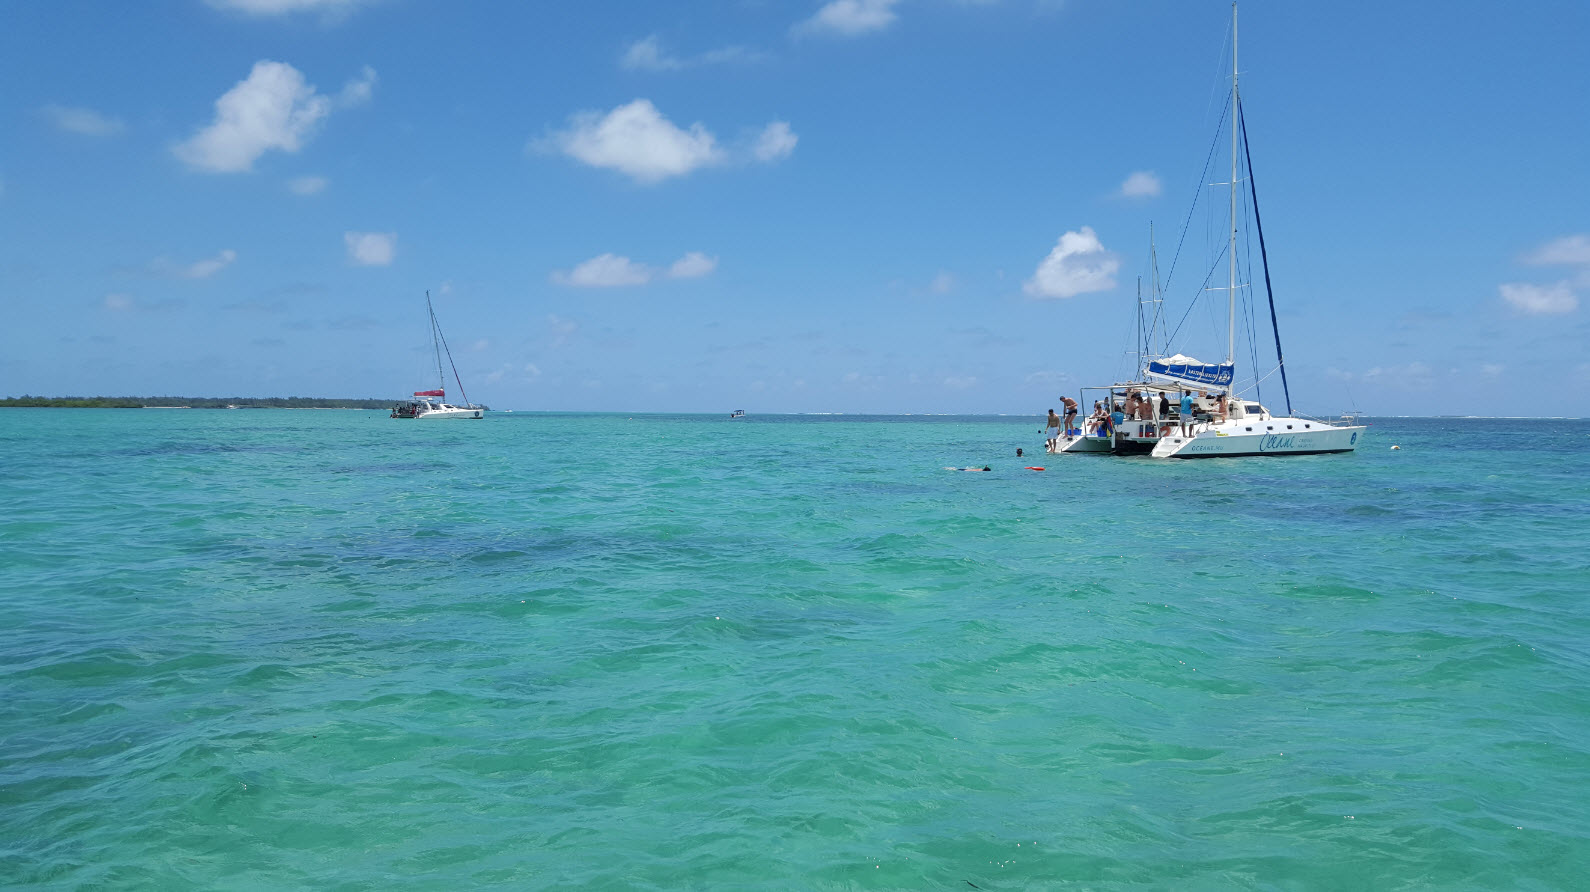 Maurice-Excursion_en_catamaran-Inspiration_for_Travellers-Lifestyle_and_luxury_travel_blog-(7)